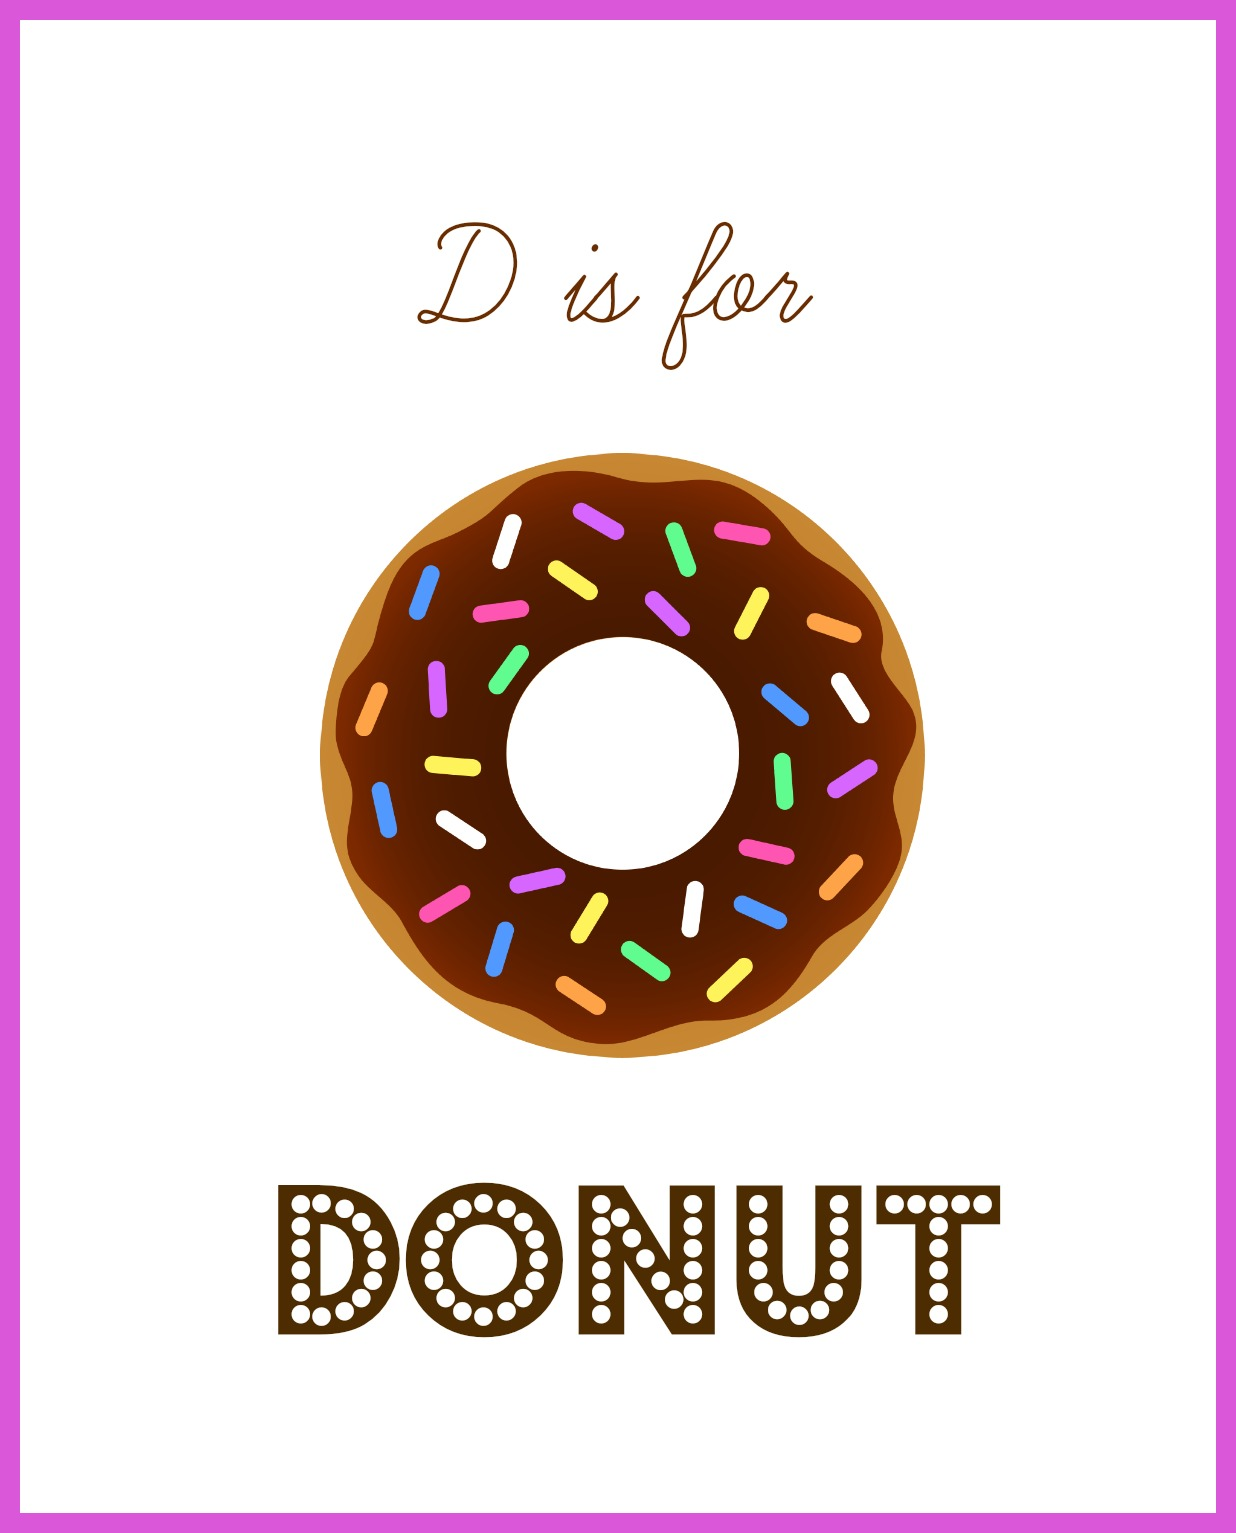 Letter D For Donuts Enchantedyankee